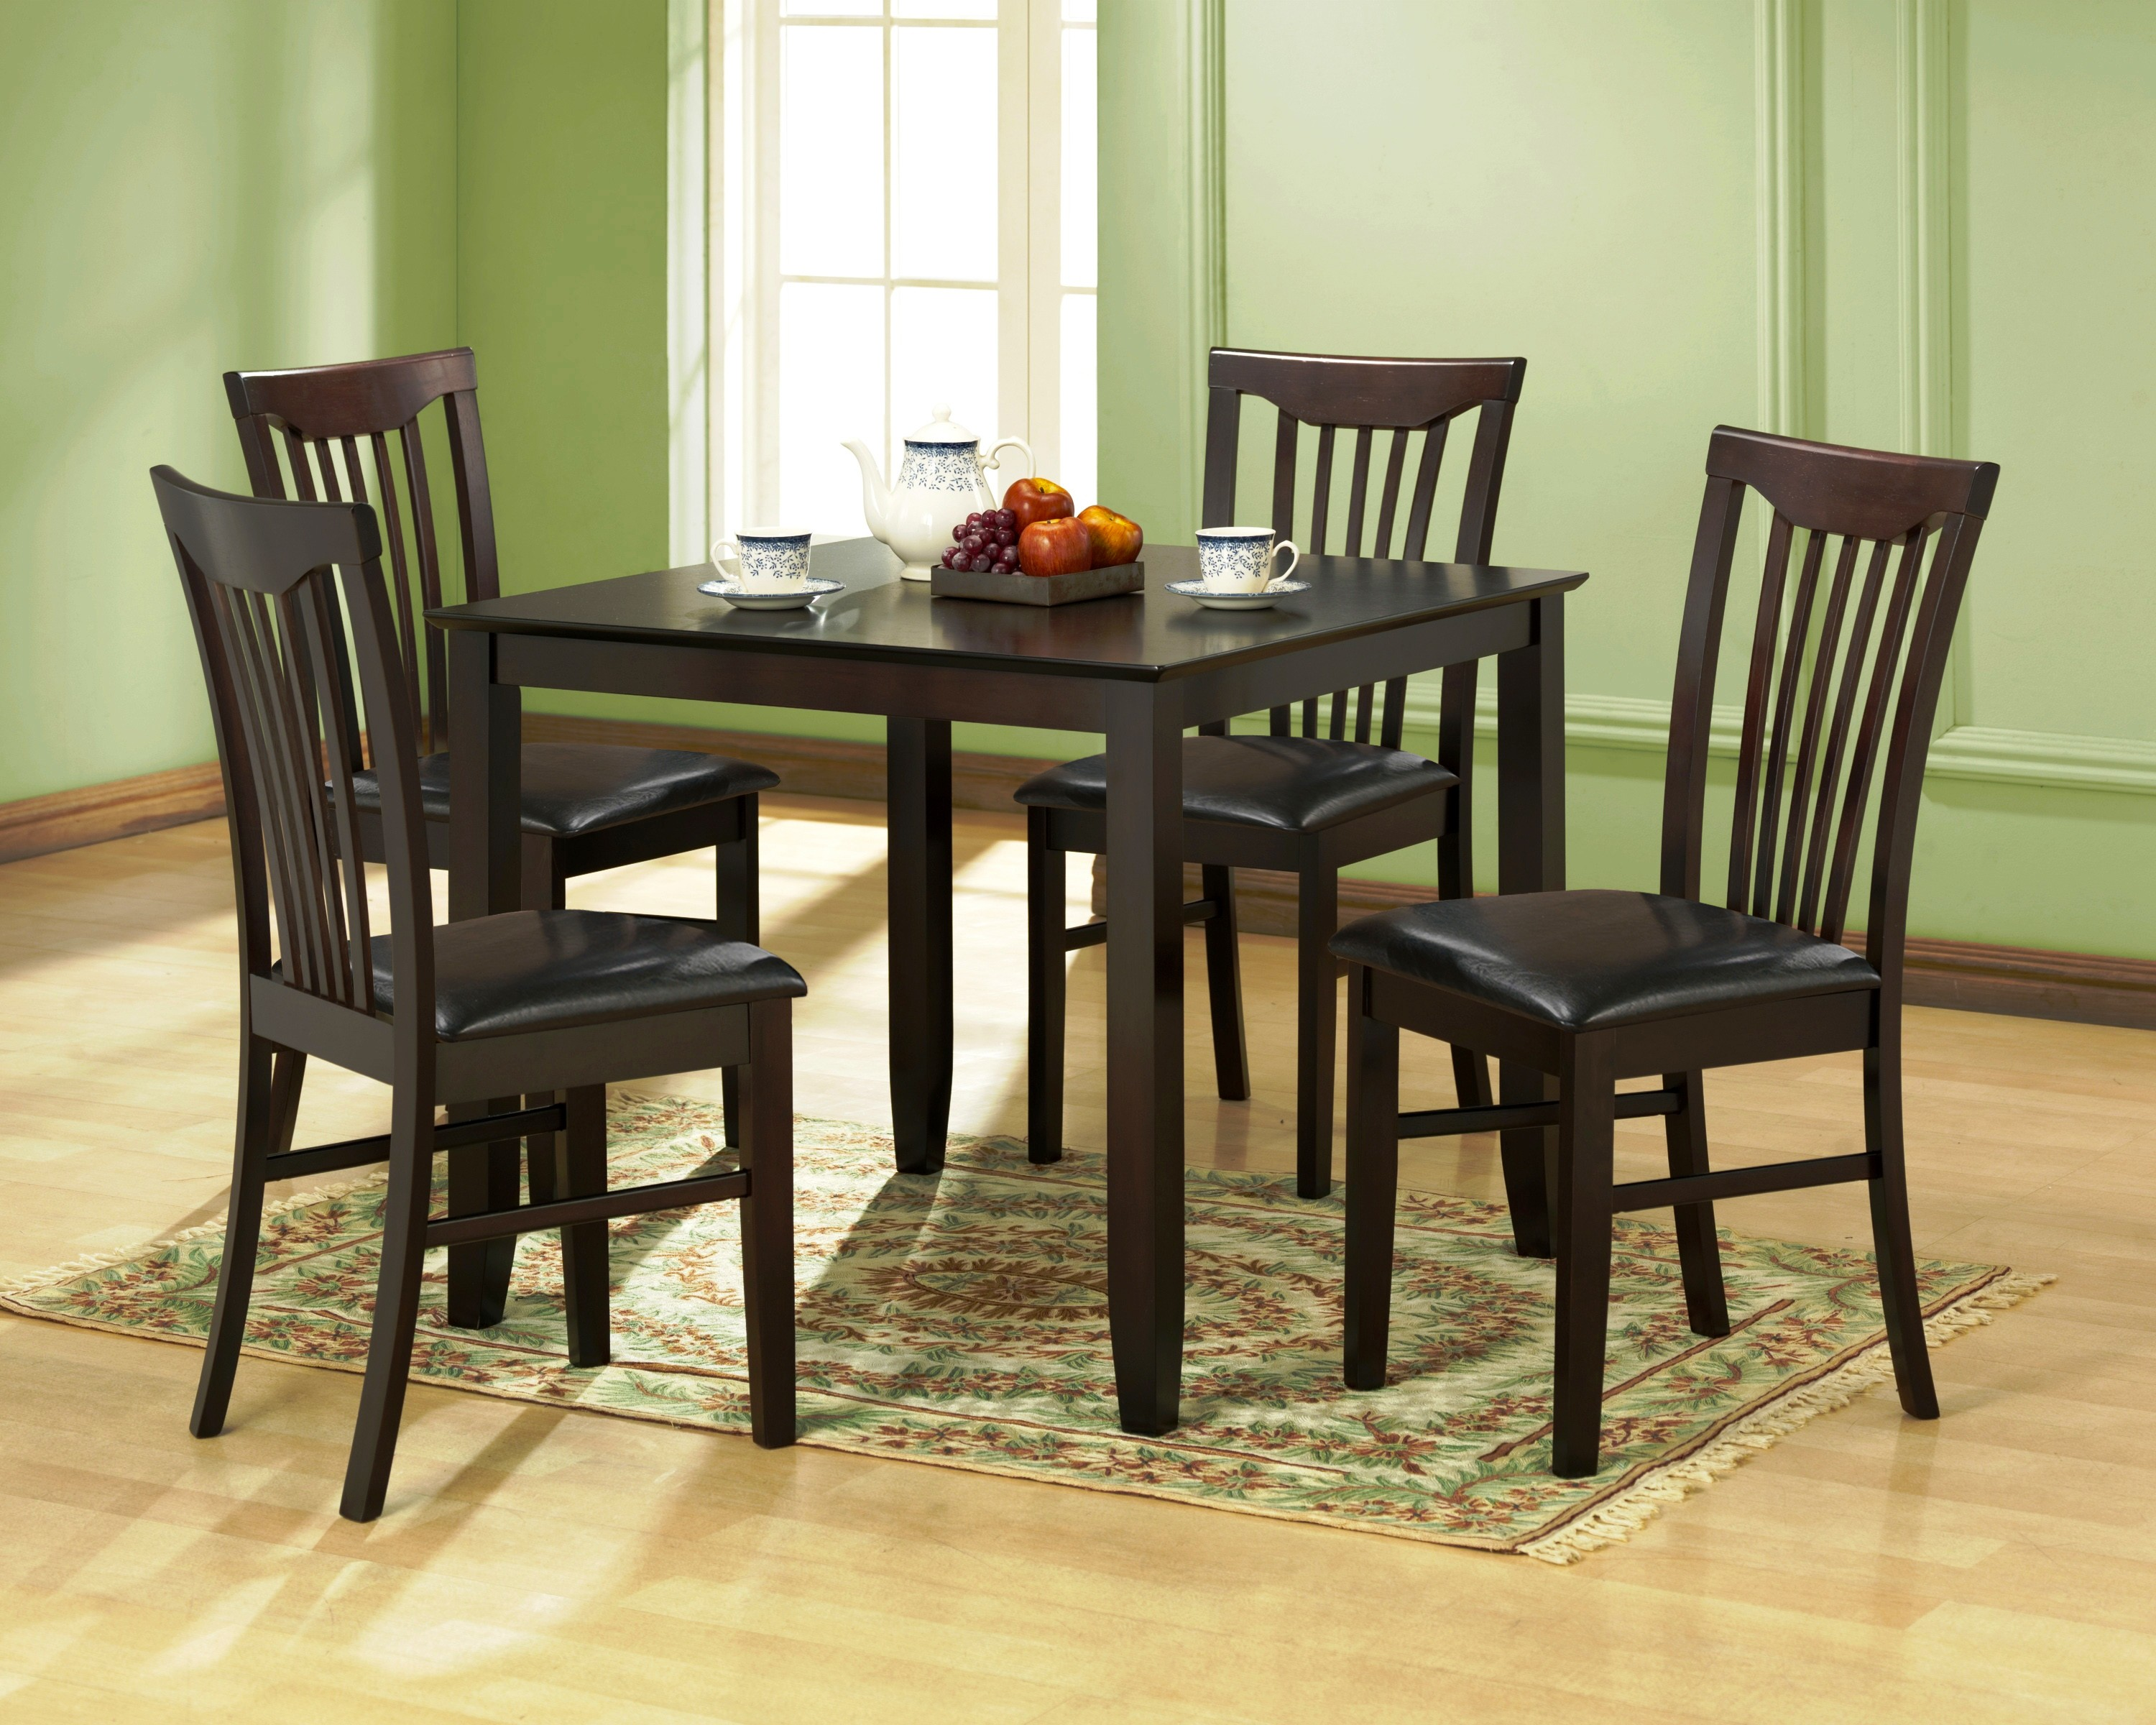 Avalon 5pc Dining Table Set DEALS